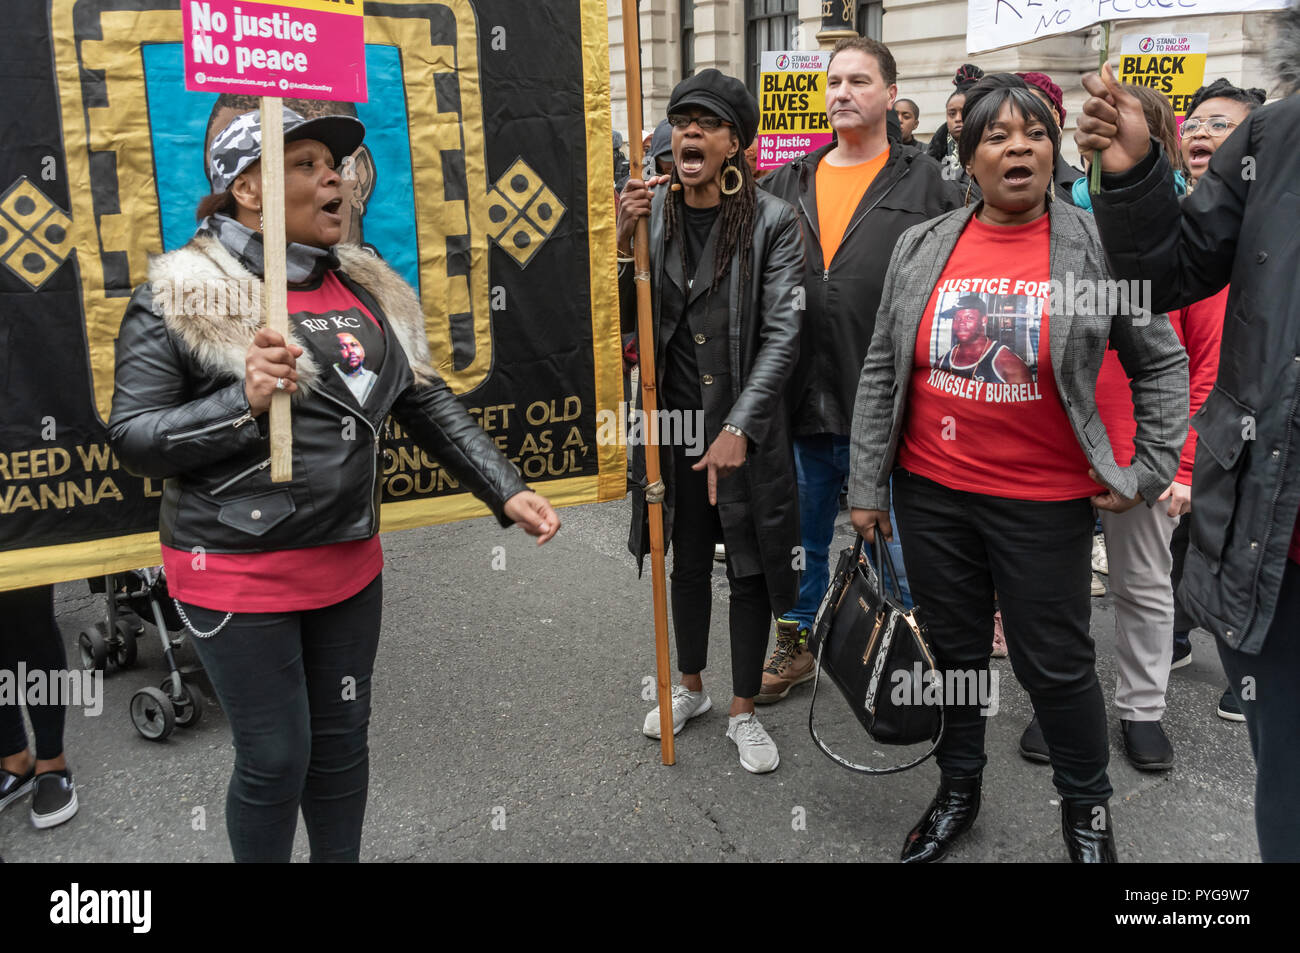 London, UK. 27th October 2018.  The United Families and Friends Campaign (UFFC), a coalition of of people killed by police, in prisons, in immigration detention and in secure psychiatric hospitals march from Trafalgar Square and make their 20th annual march of remembrance at a funereal pace to Downing St. Credit: Peter Marshall/Alamy Live News - Stock Image